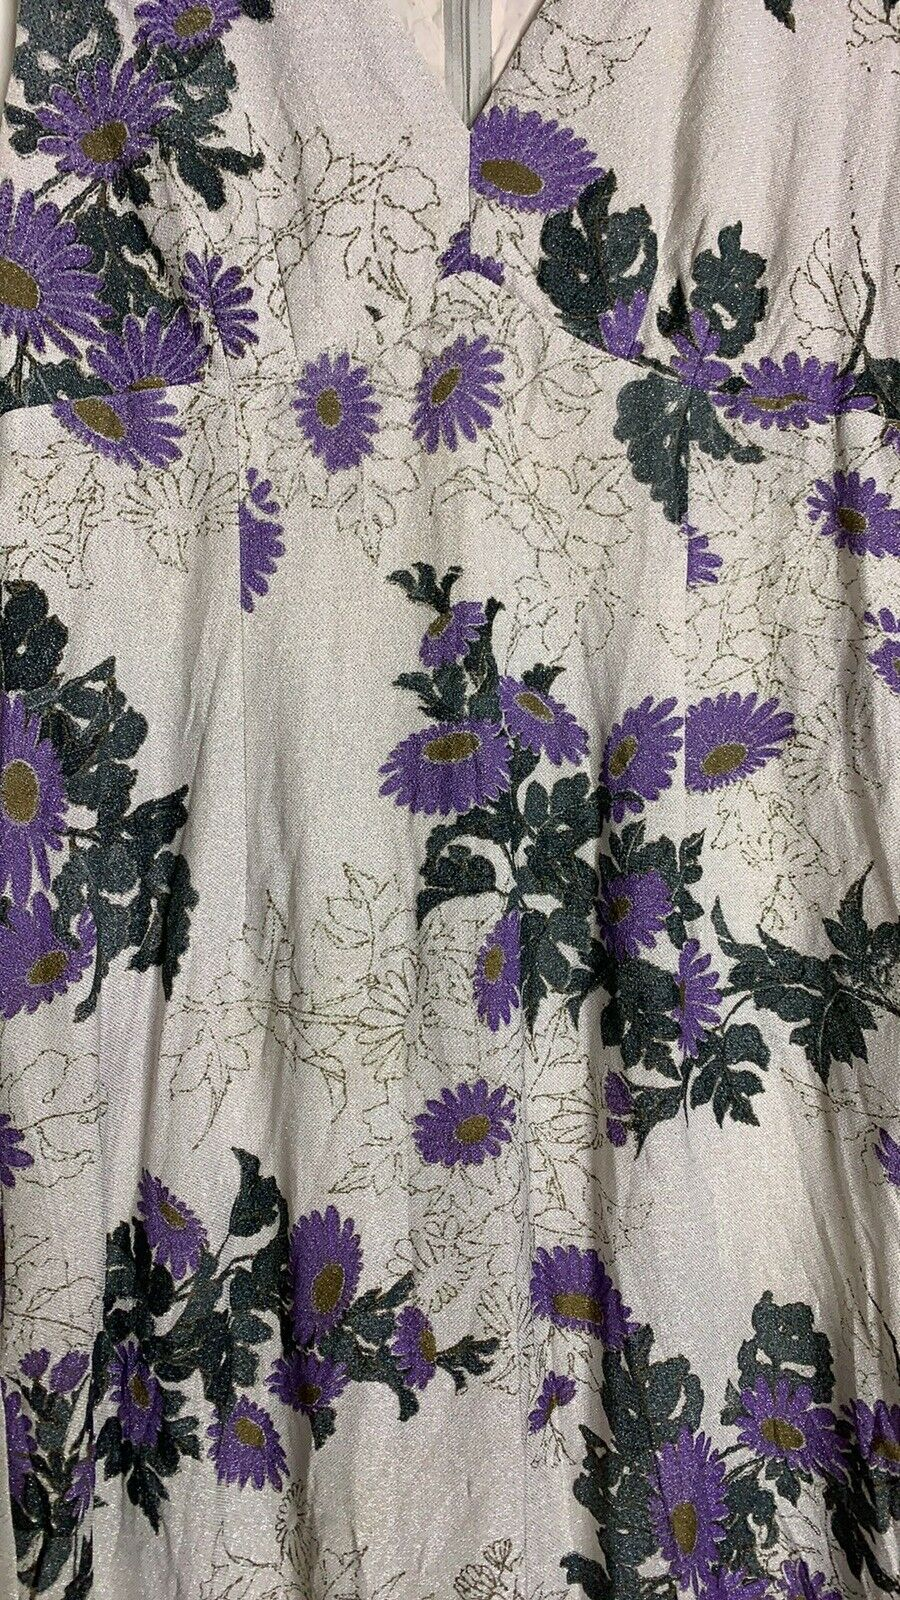 Vintage Alfred Shaheen Daisy Dress - image 4